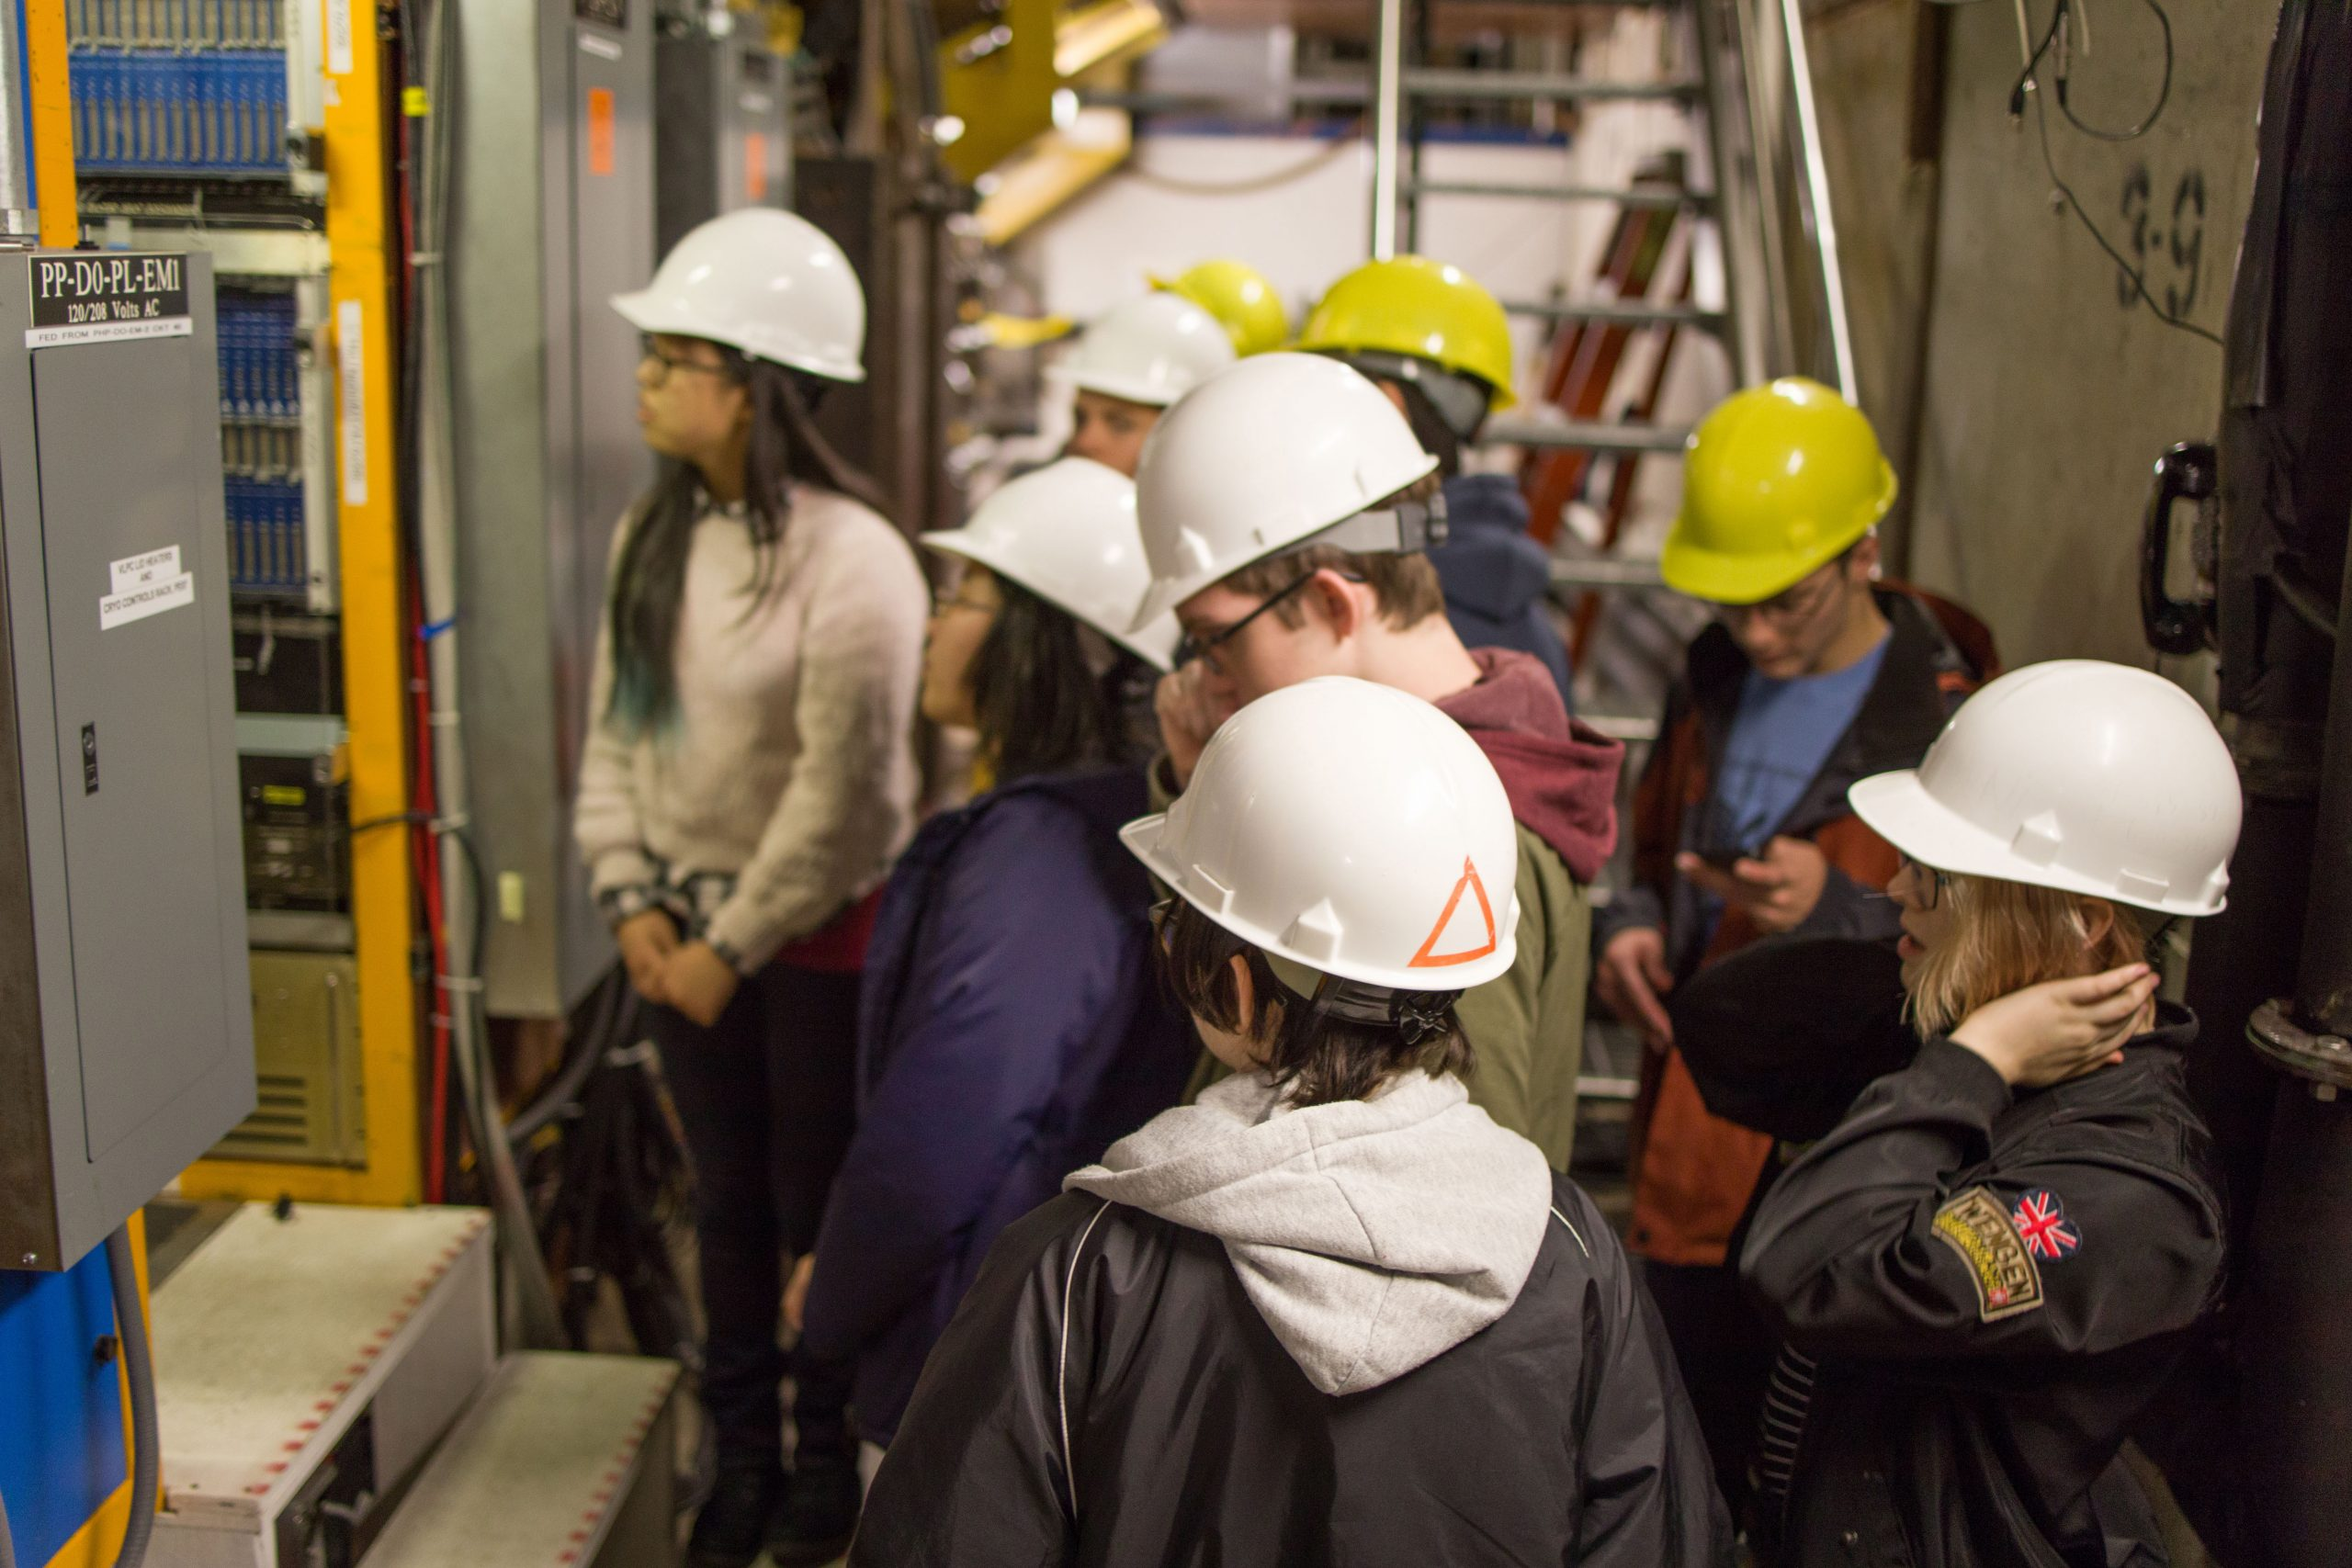 IMSA students on the ground floor of DZero on Nov. 26, 2018. This continues to be one of the best tours at Fermilab. George Ginther and Stefan Gruenendahl always need tour guides. If you want to help with these tours, contact them for details on how to get involved. It is a ton of fun. people, DZero Photo: Elliott McCrory